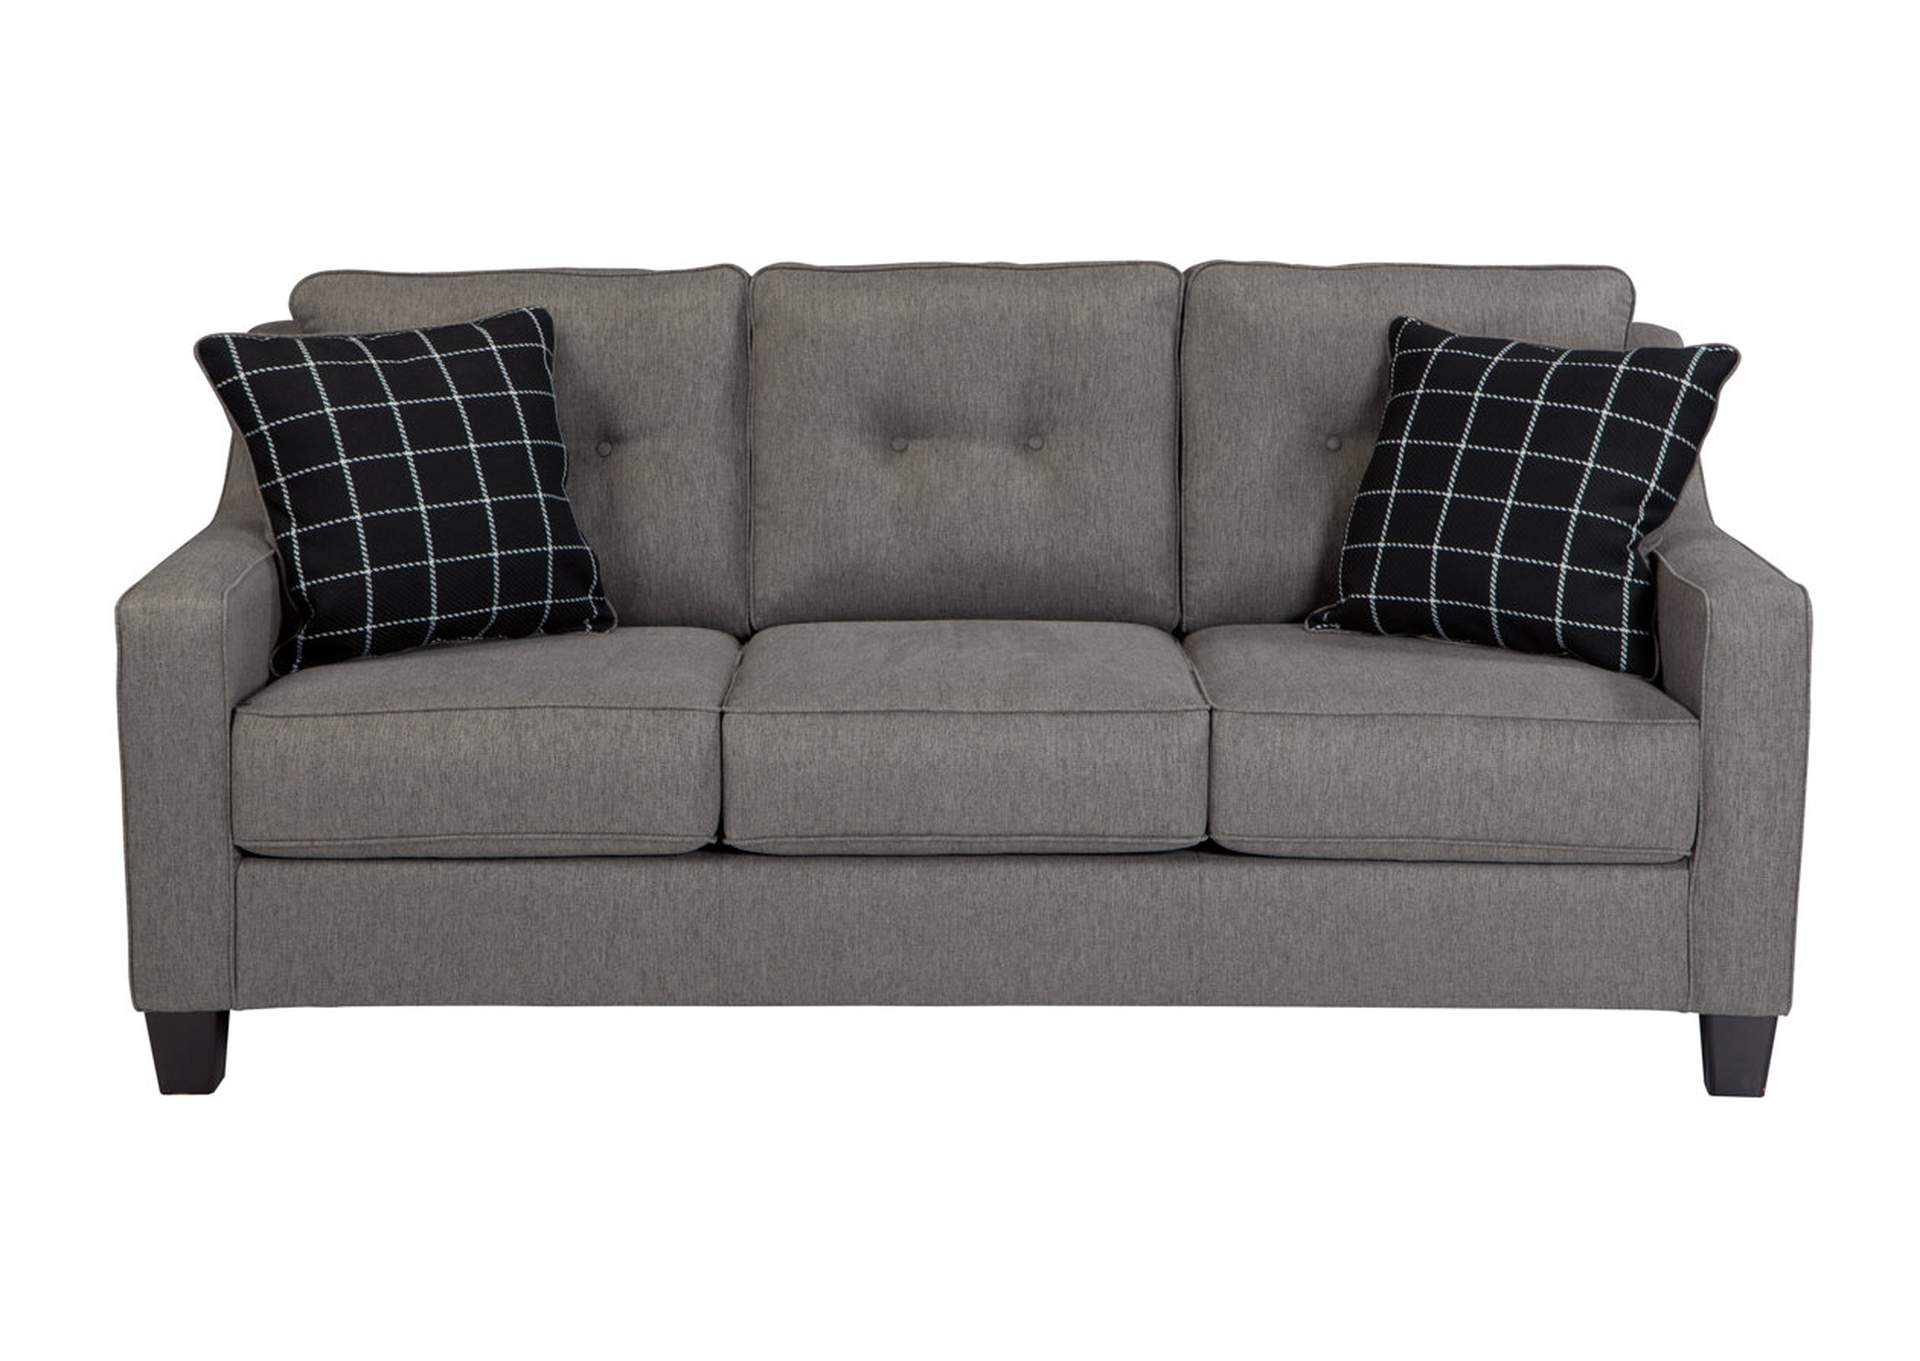 Goree S Furniture Opelika Al Brindon Charcoal Sofa